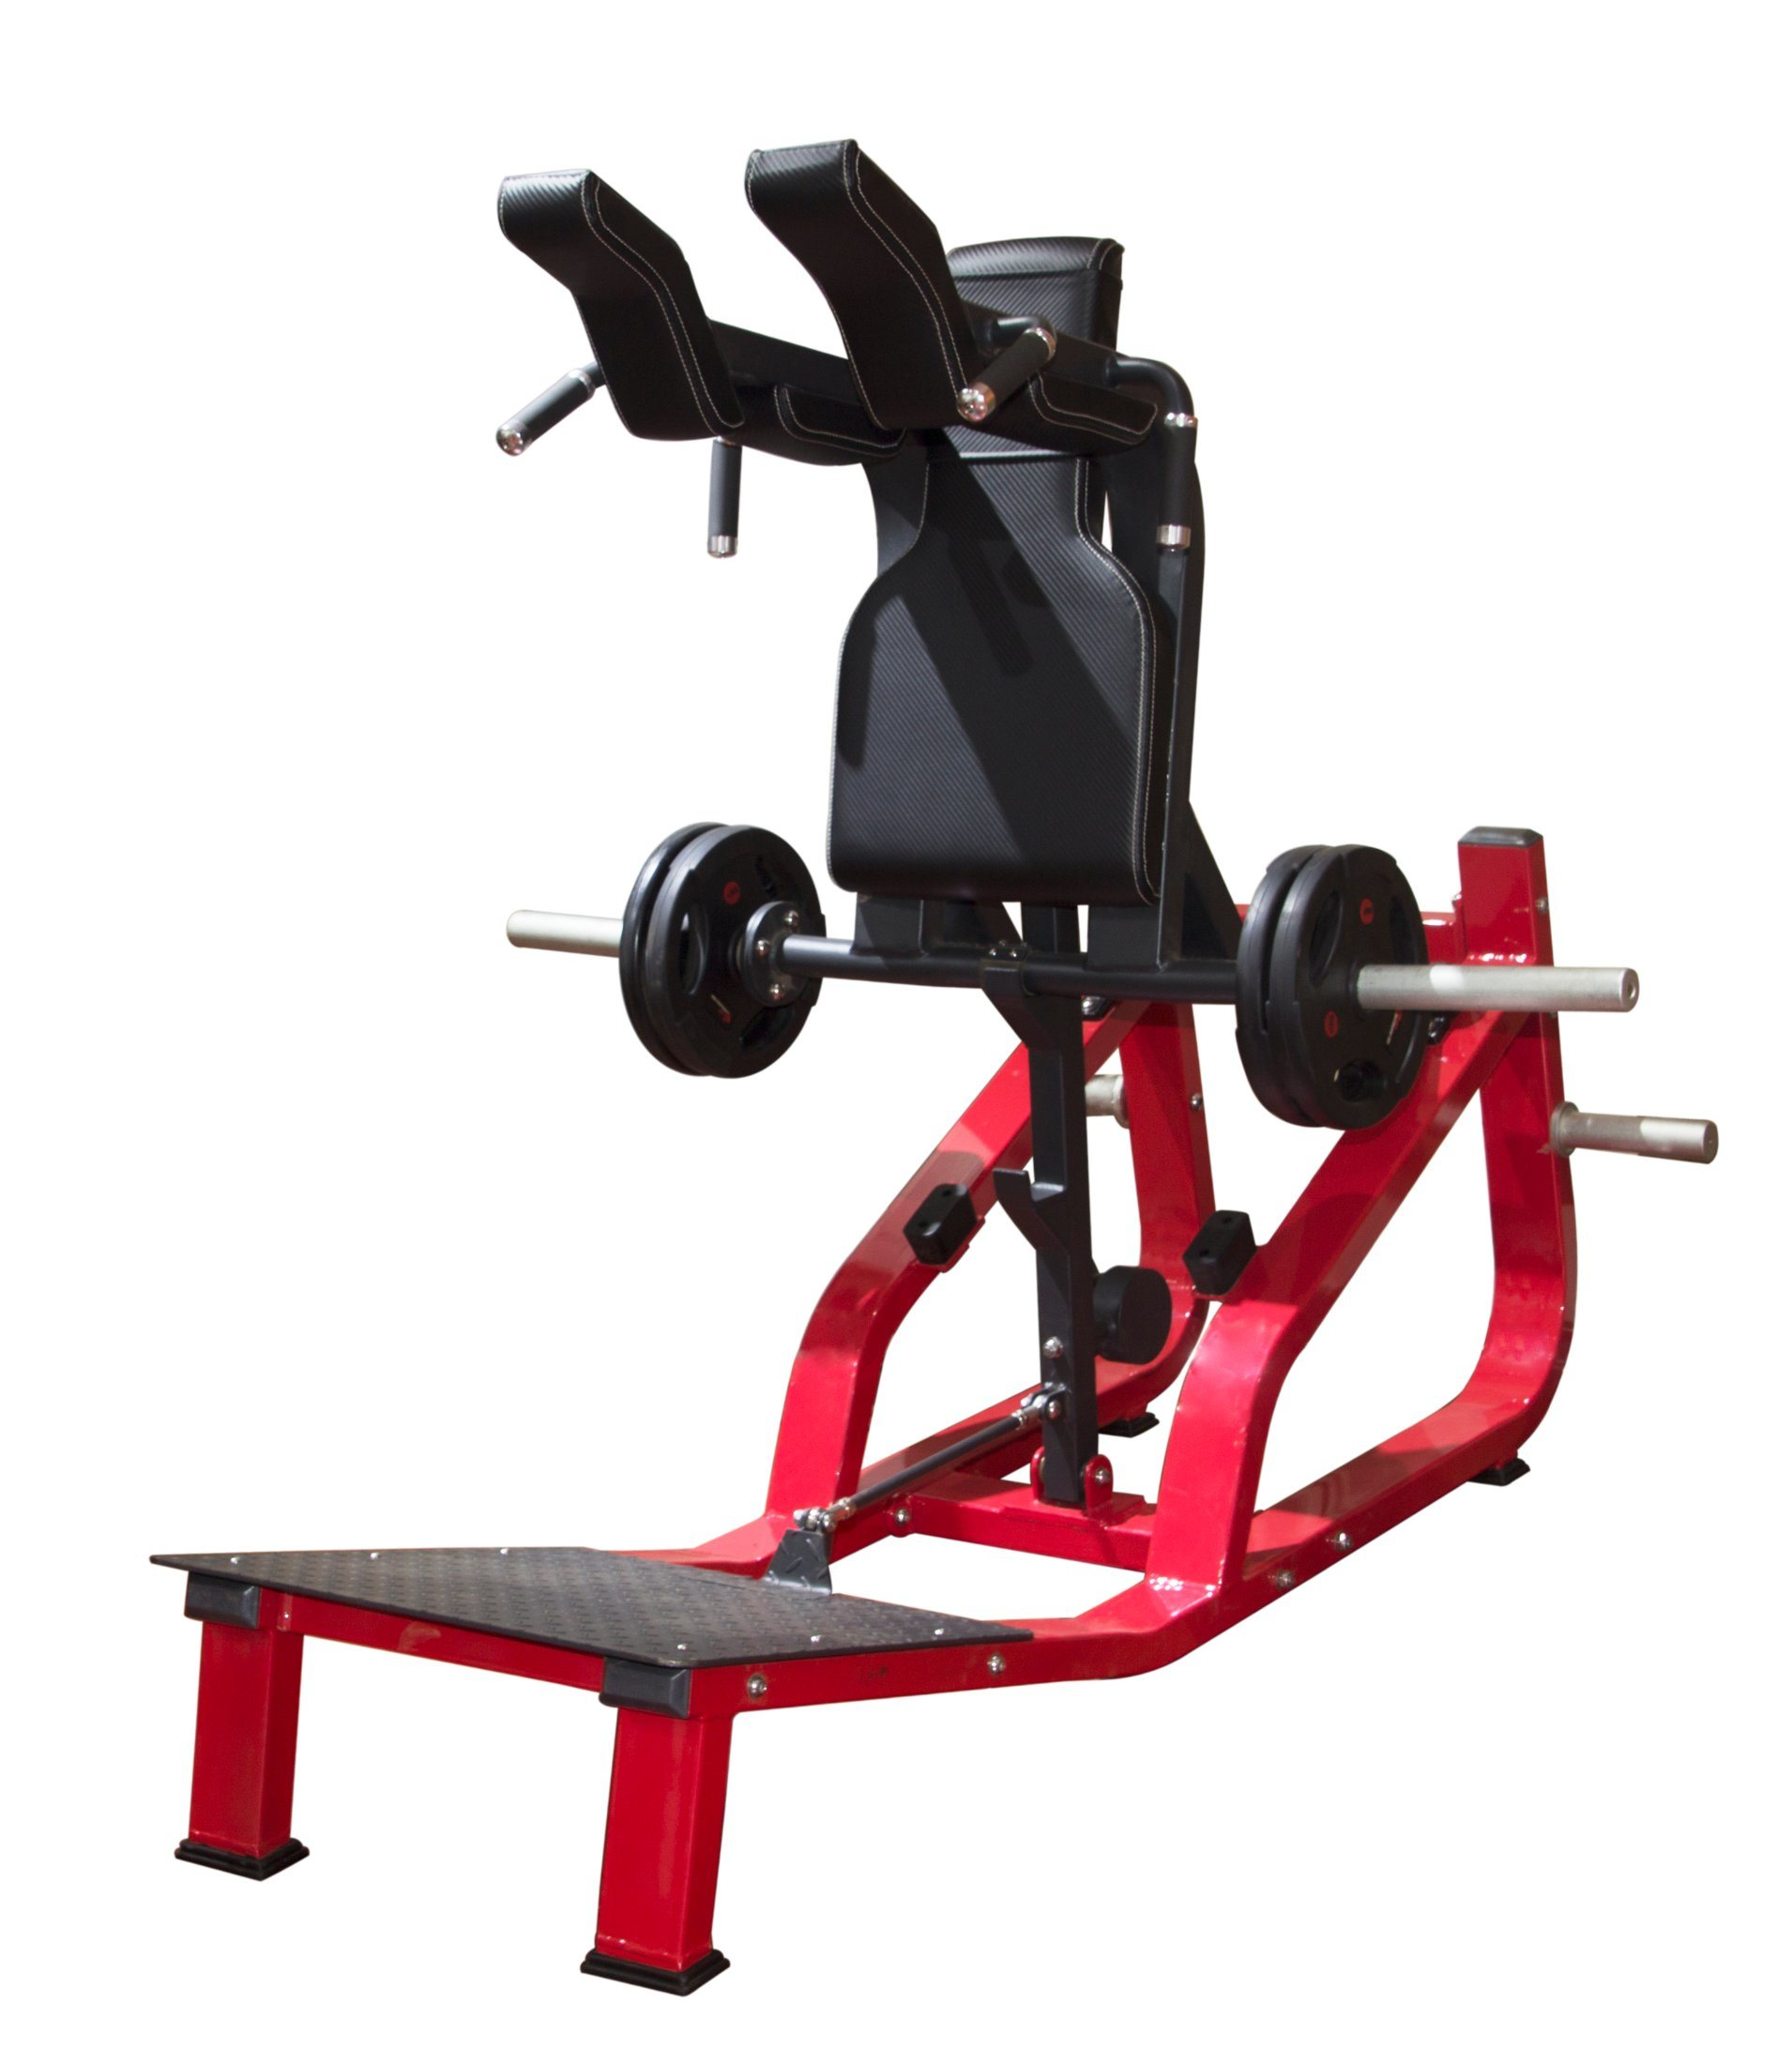 Hammer Strength Seated Dip - PL-DIP | Life Fitness |Strength Equipment